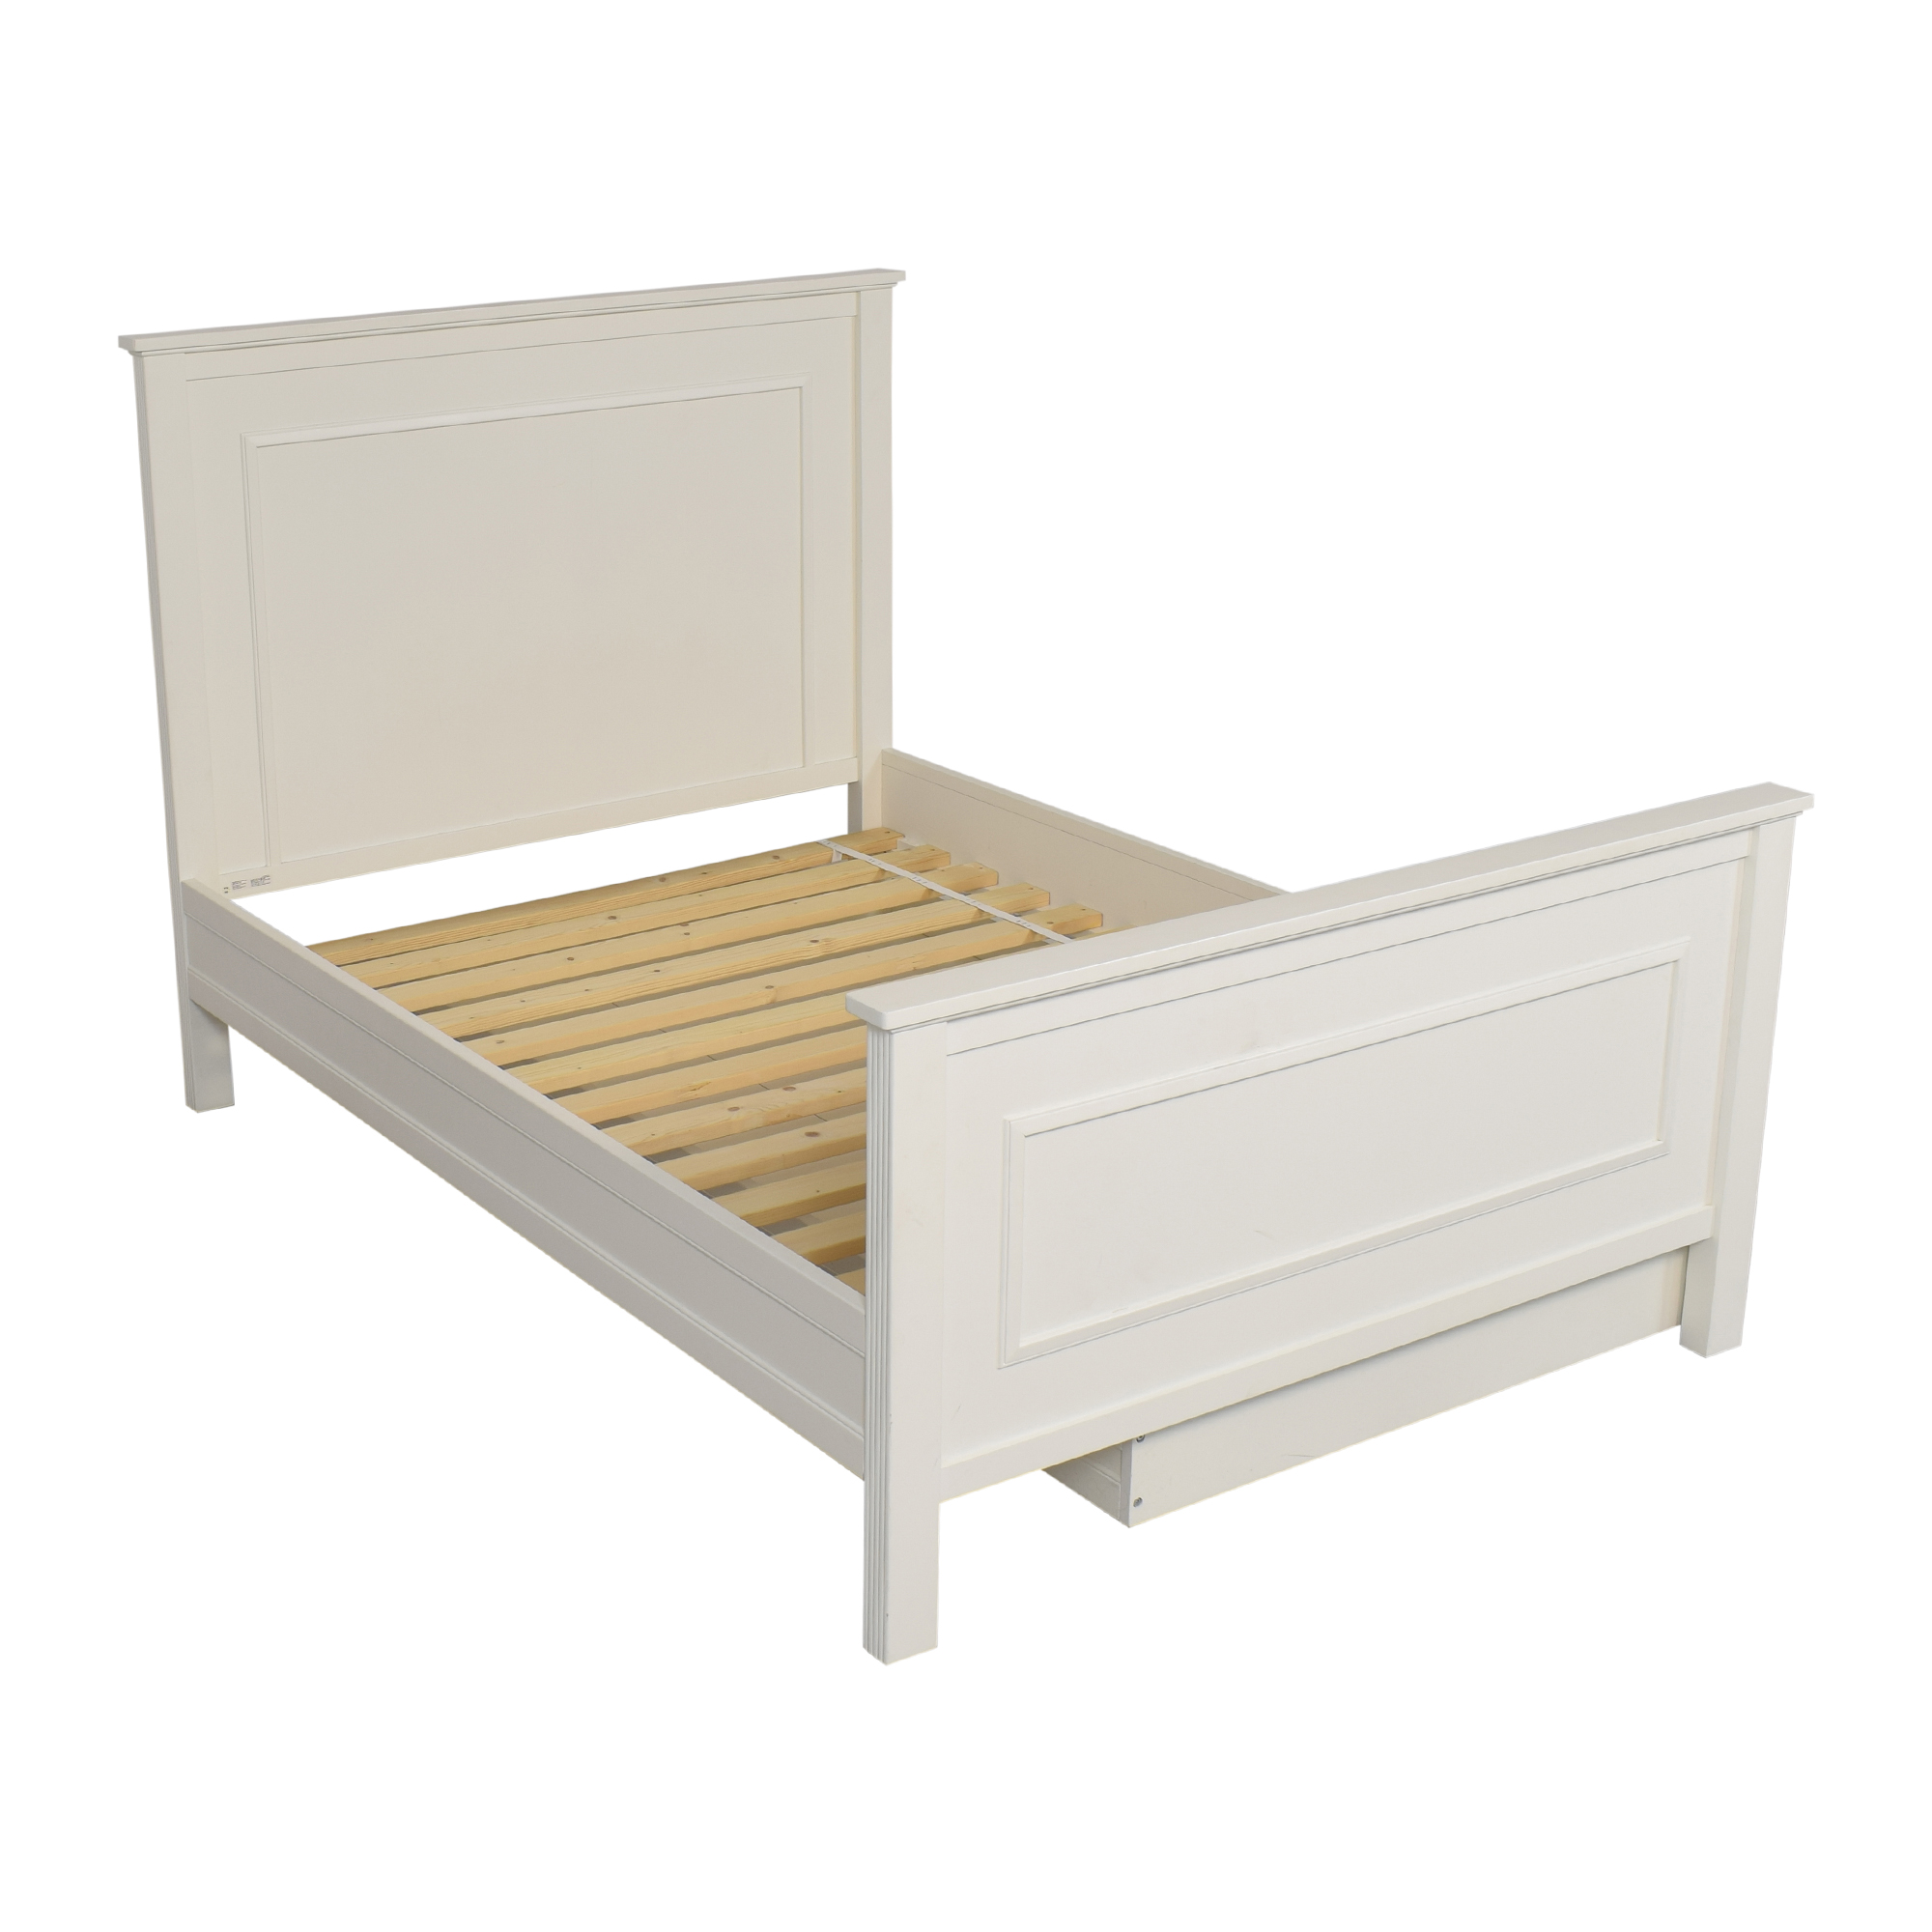 Pottery Barn Kids Pottery Barn Kids Fillmore Bed with Trundle ct